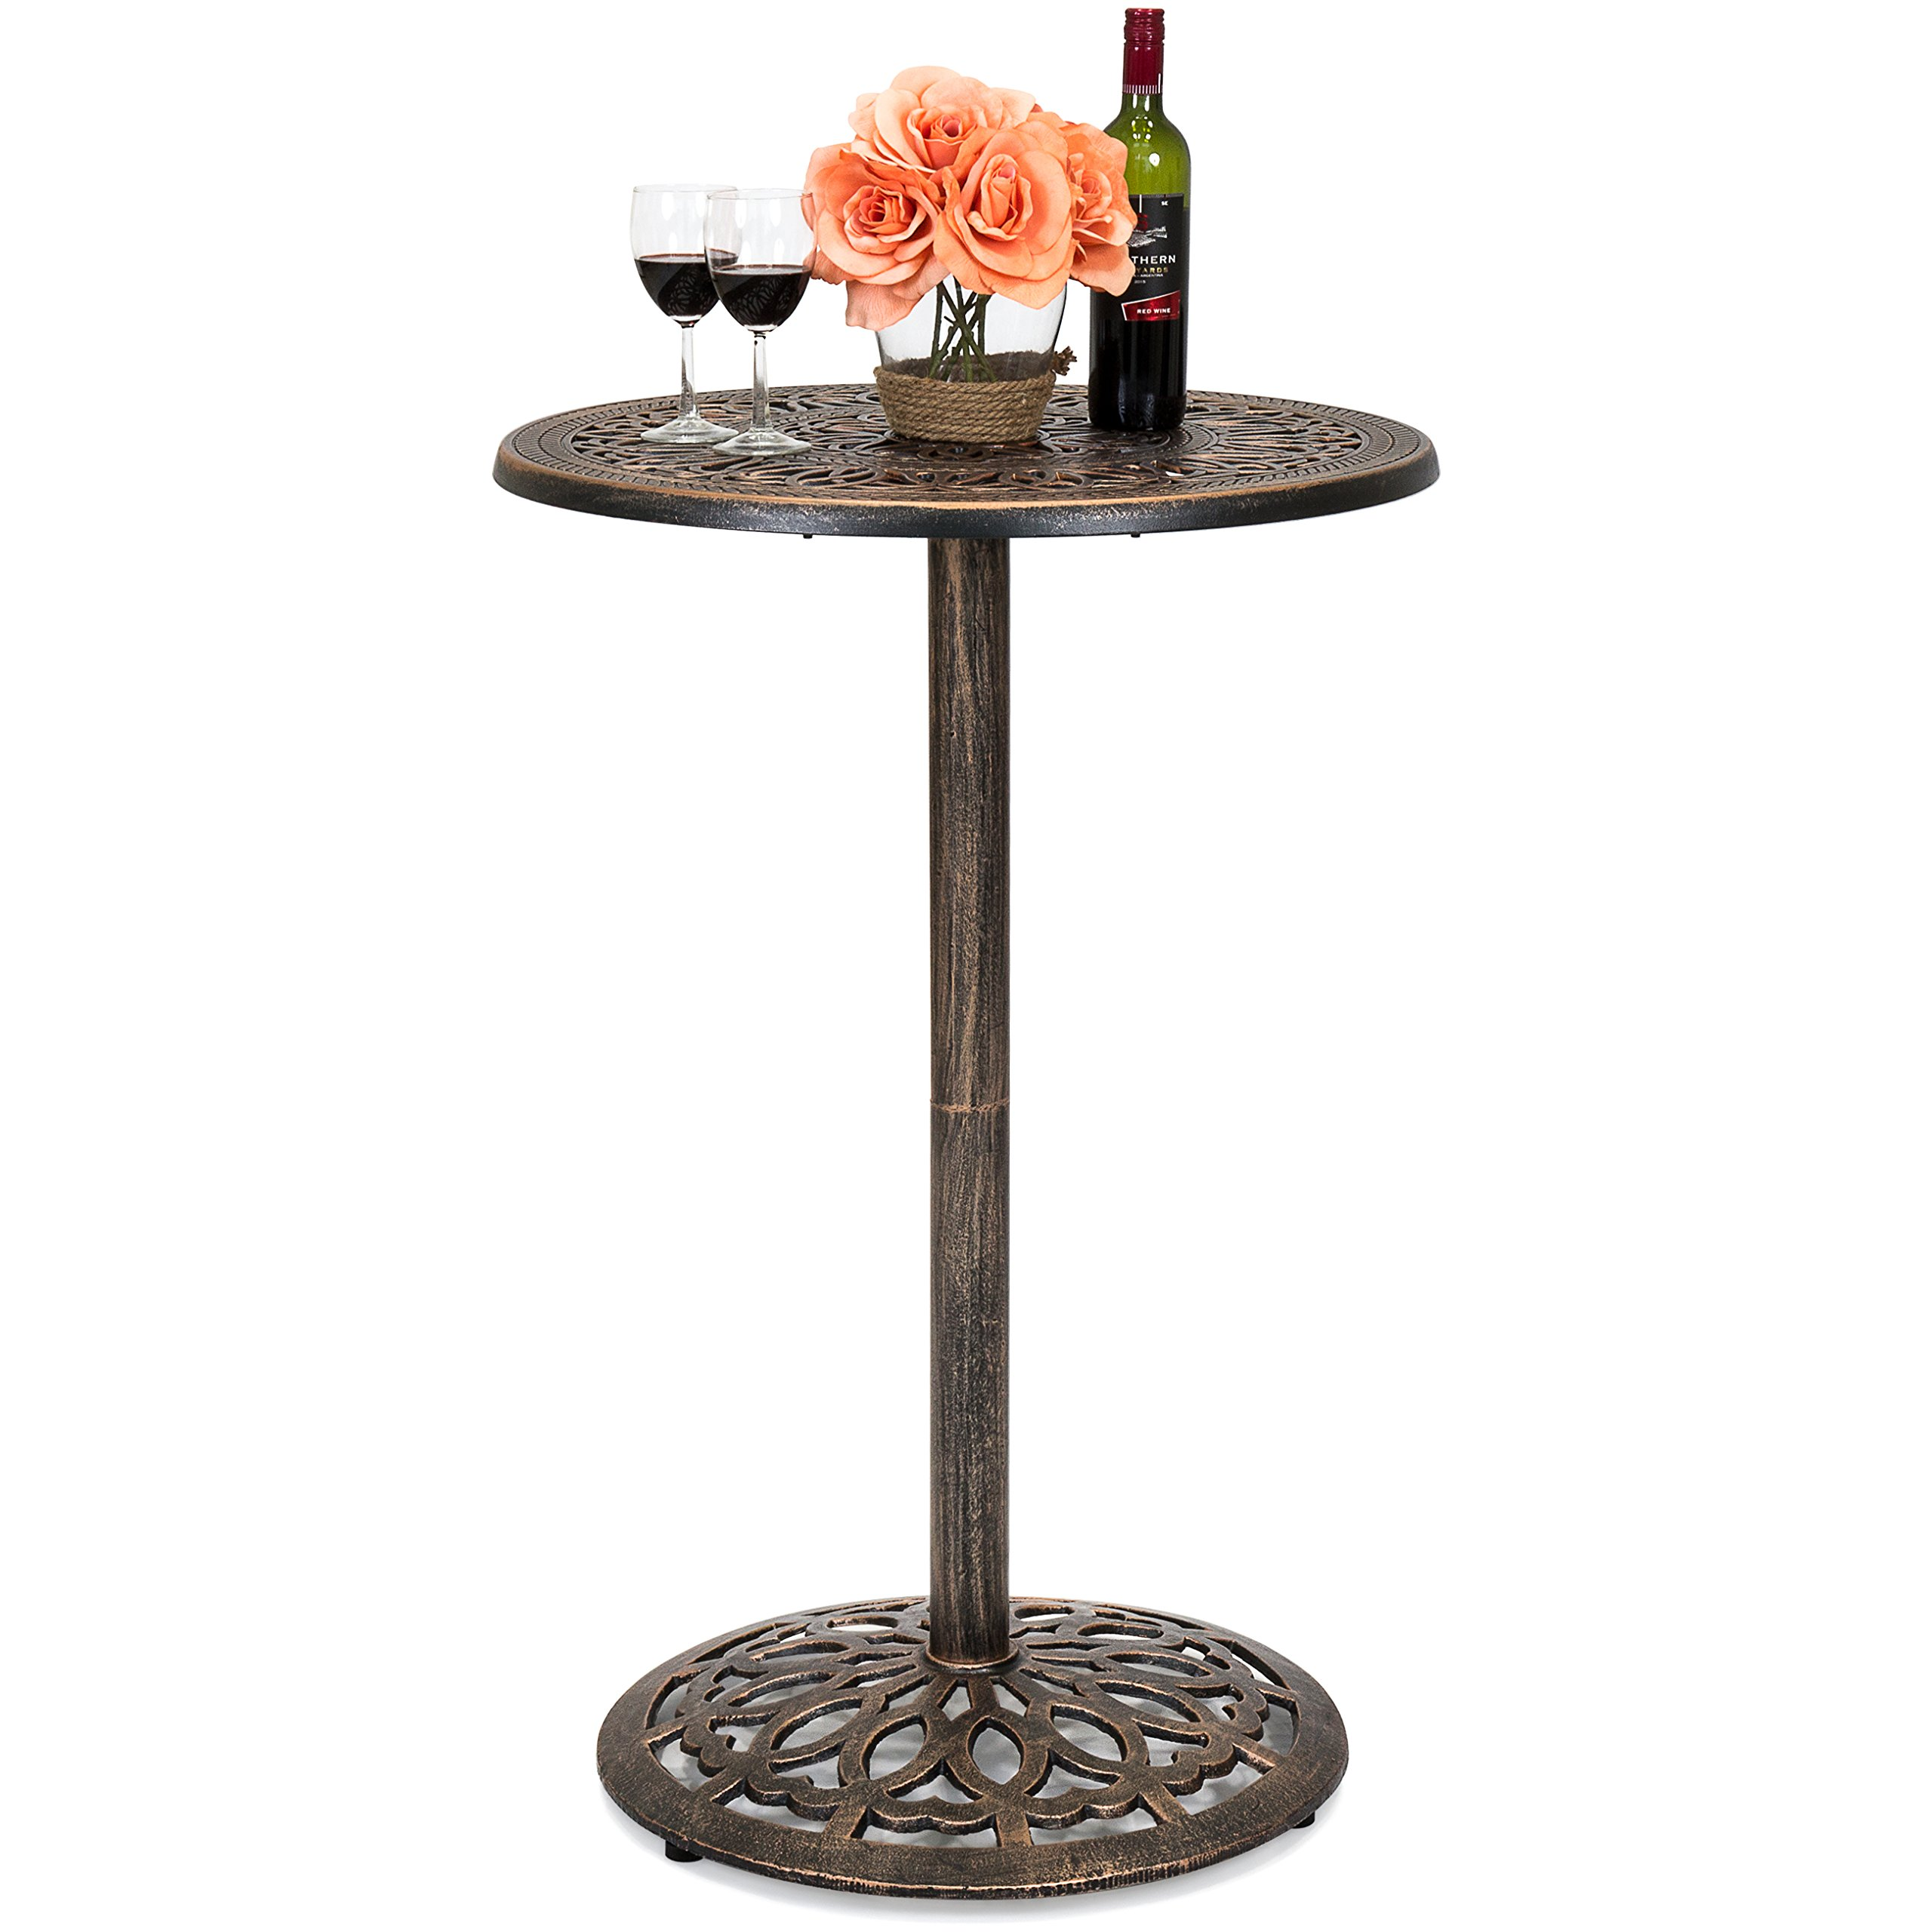 Best Choice Products Outdoor Bar Height Cast Aluminum Bistro Table (Copper) by Best Choice Products